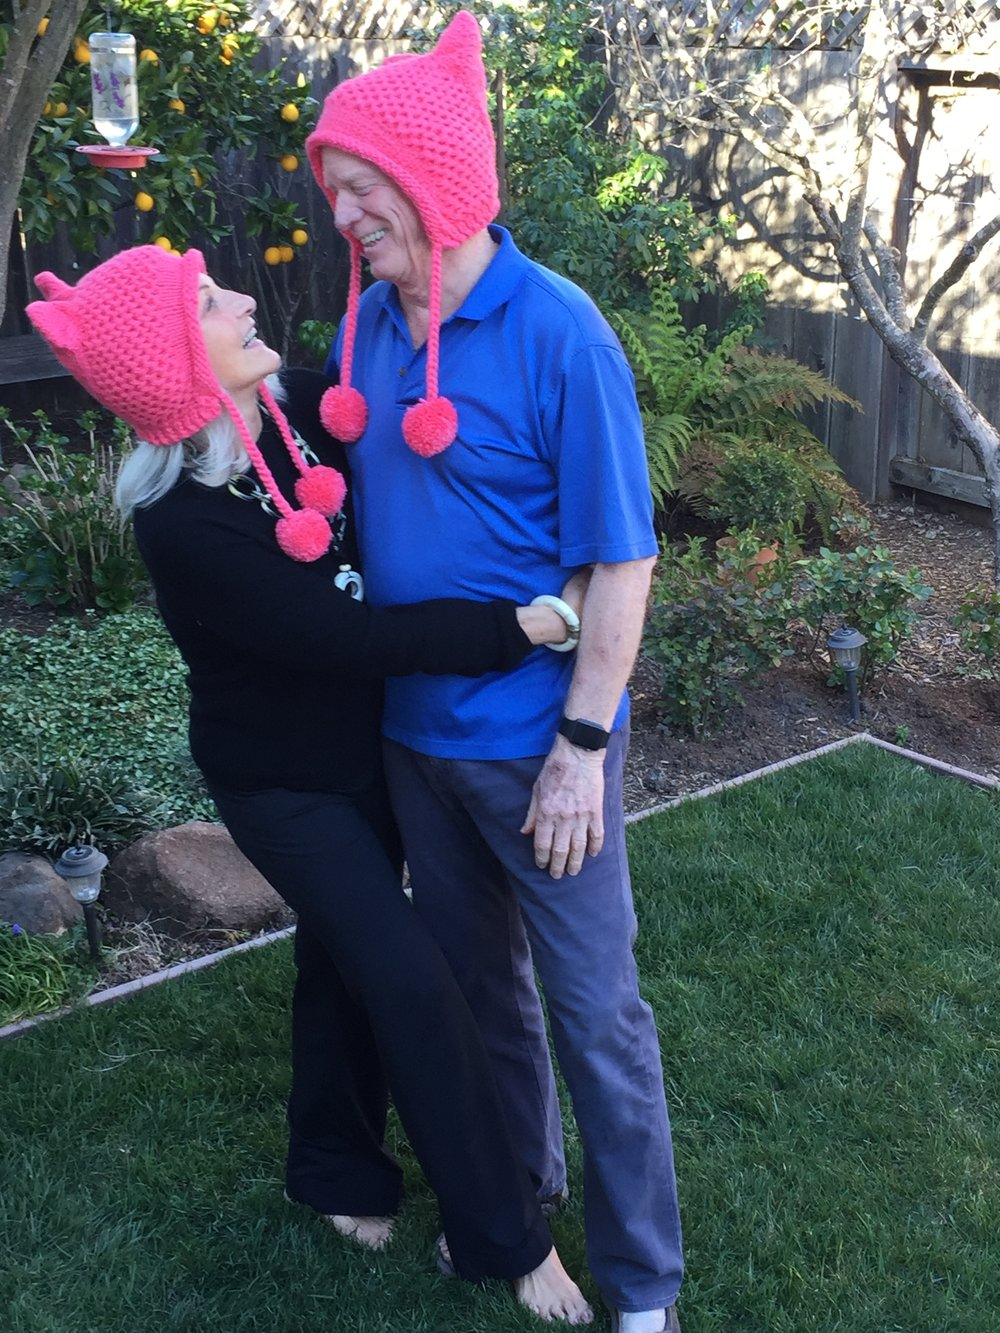 Nancy and I checking out our Pink Pussy hats, early 2017